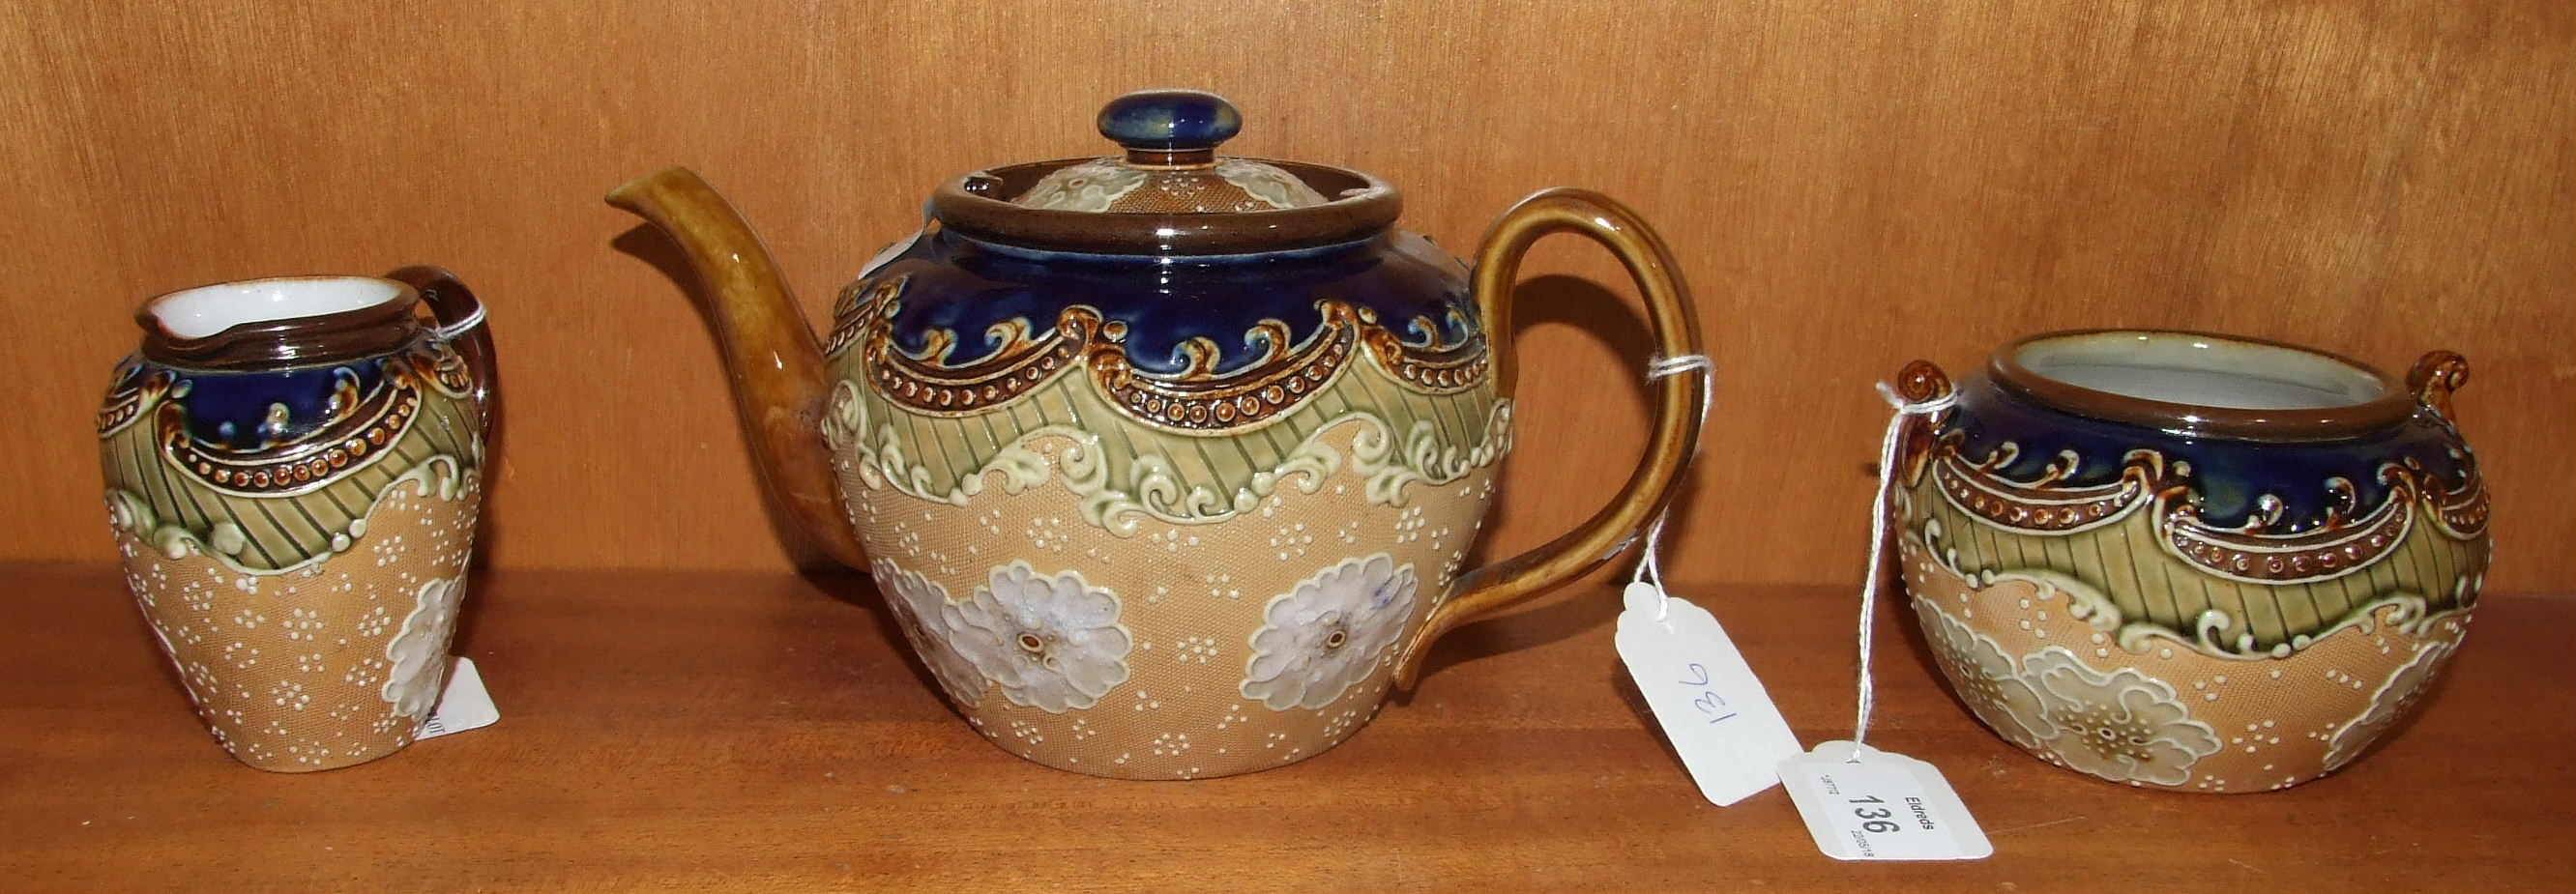 Lot 136 - A Royal Doulton stoneware three-piece tea service decorated with flowers on a pale ground, within